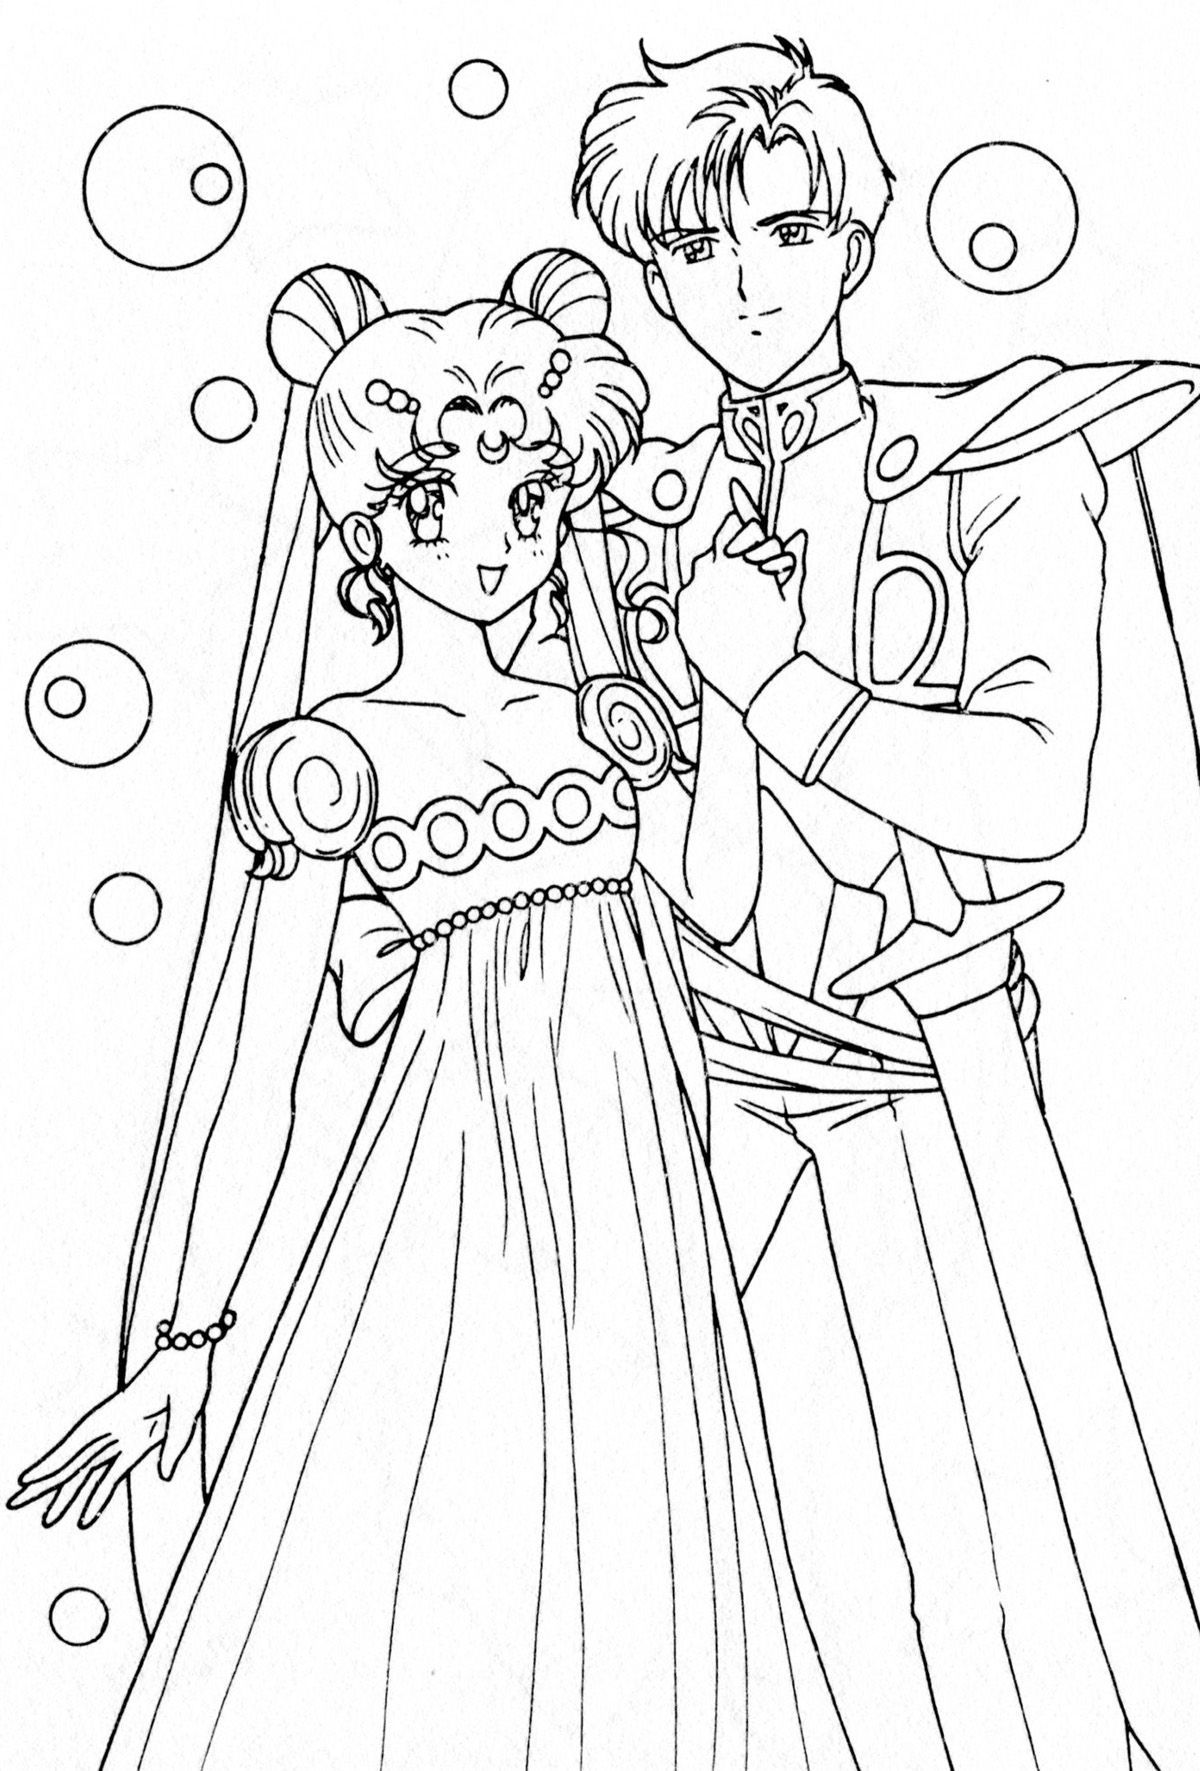 Princess Serenity and Prince Endymion Coloring Page // #sailormoon ...